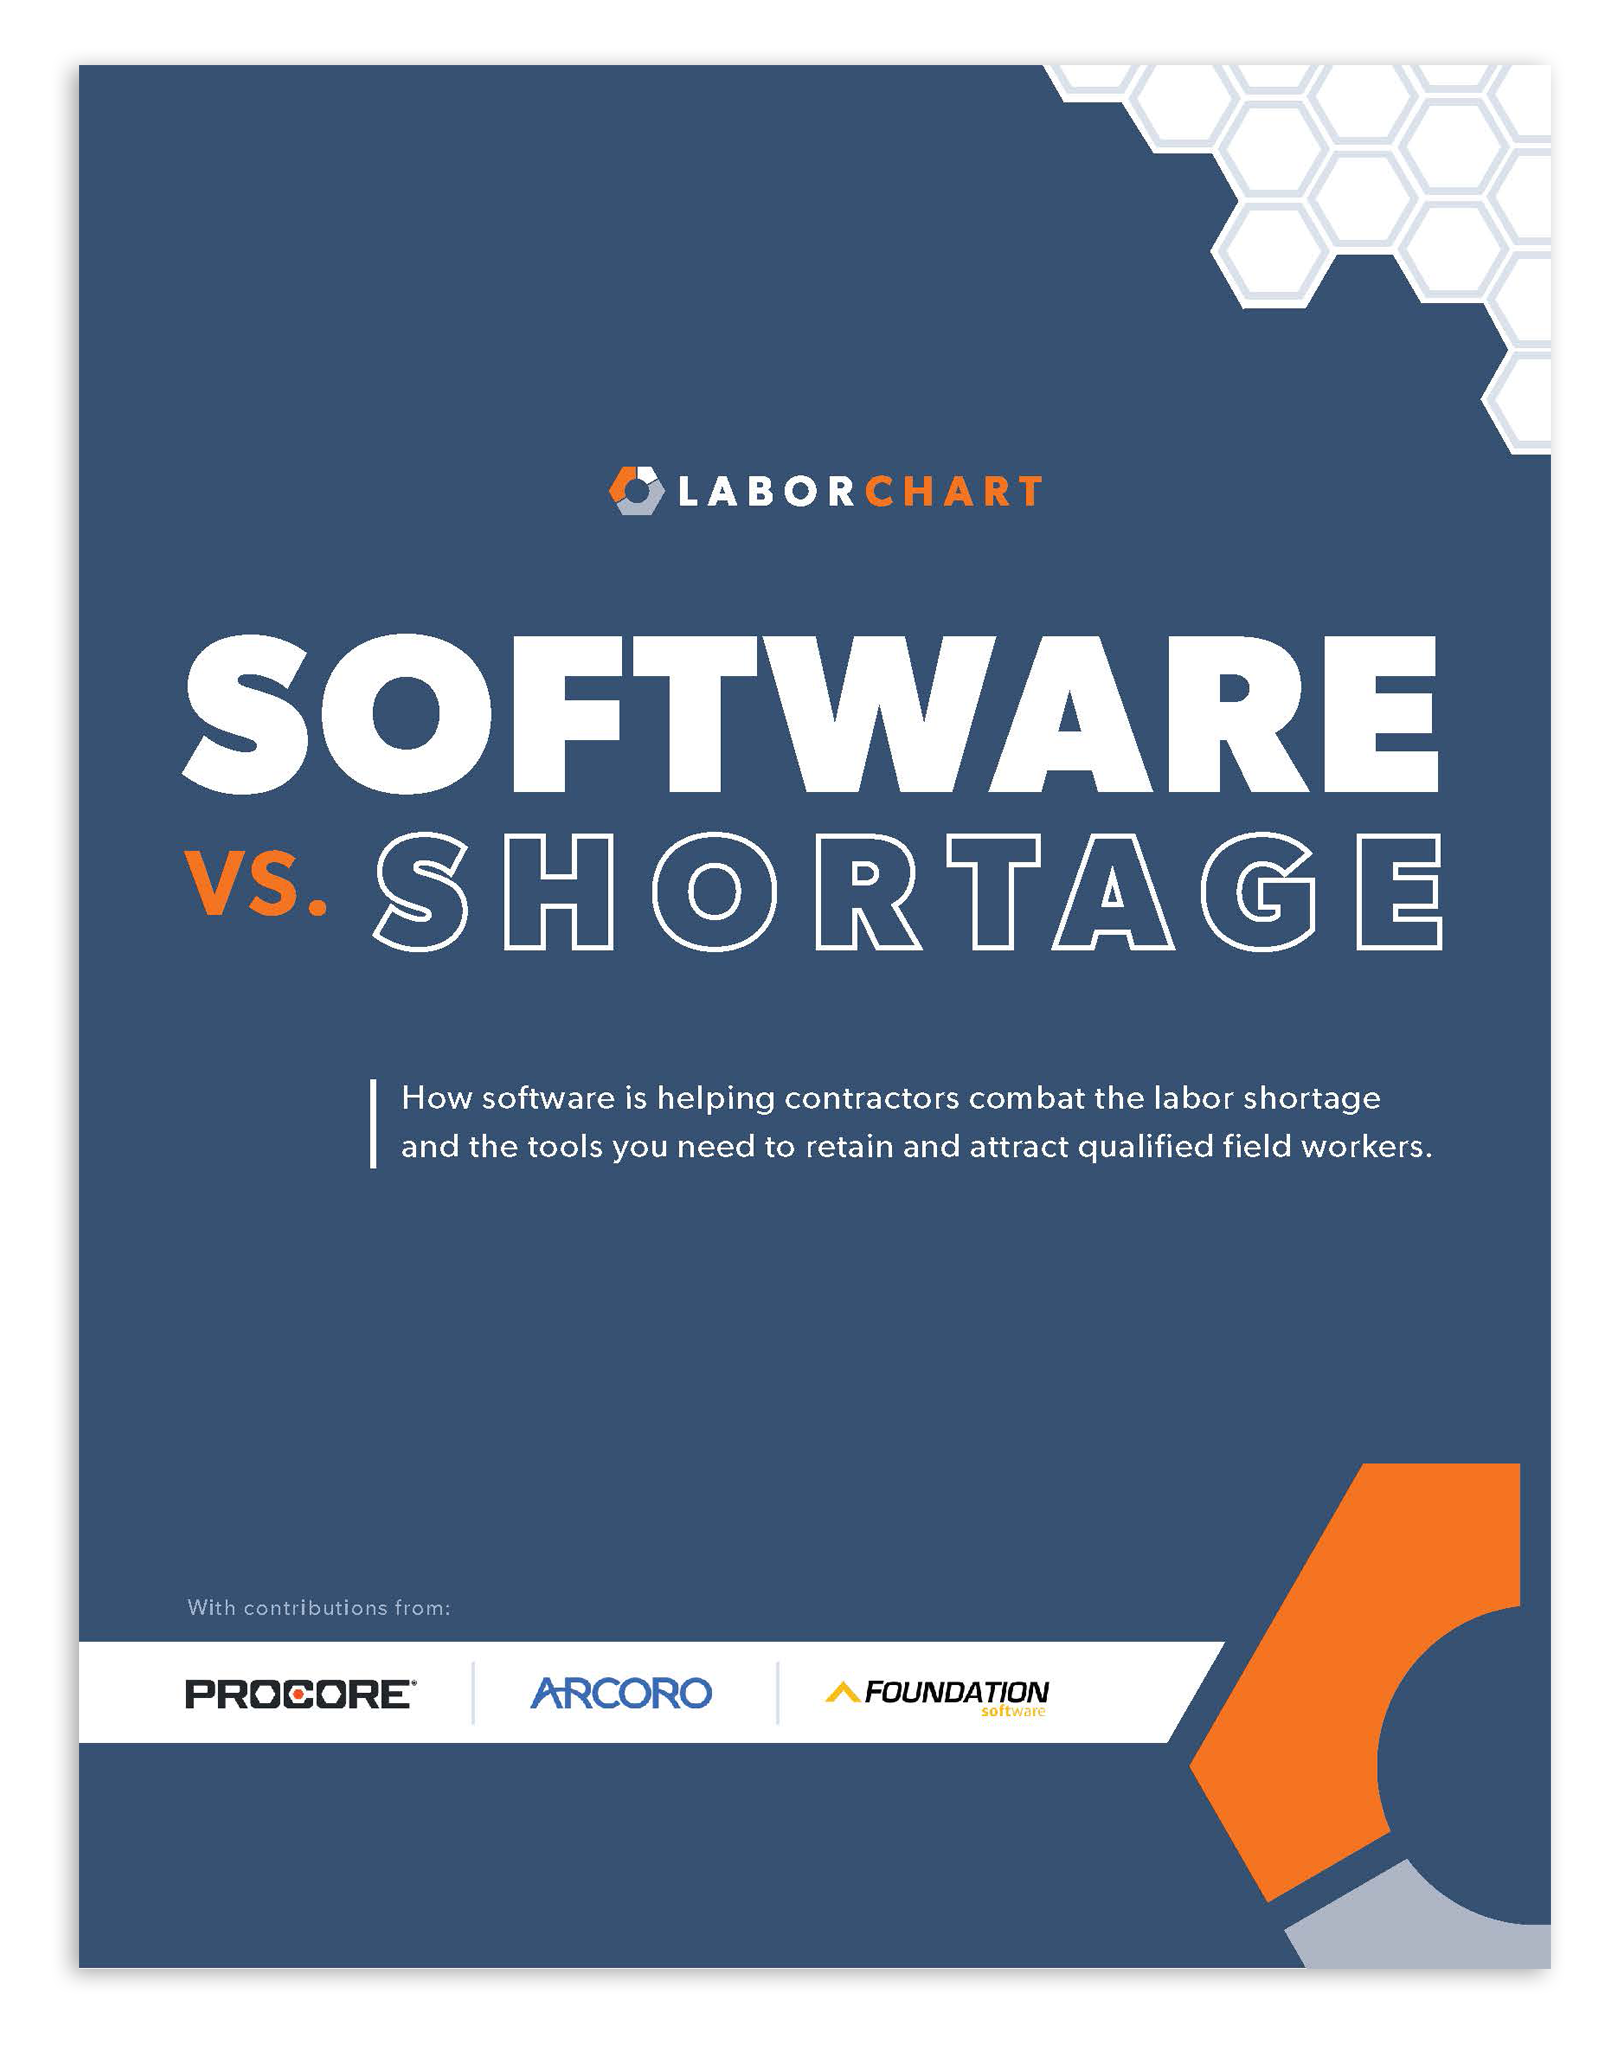 Software vs. Shortage white paper cover by LaborChart and with contributions from Procore, Arcoro and Foundation software.